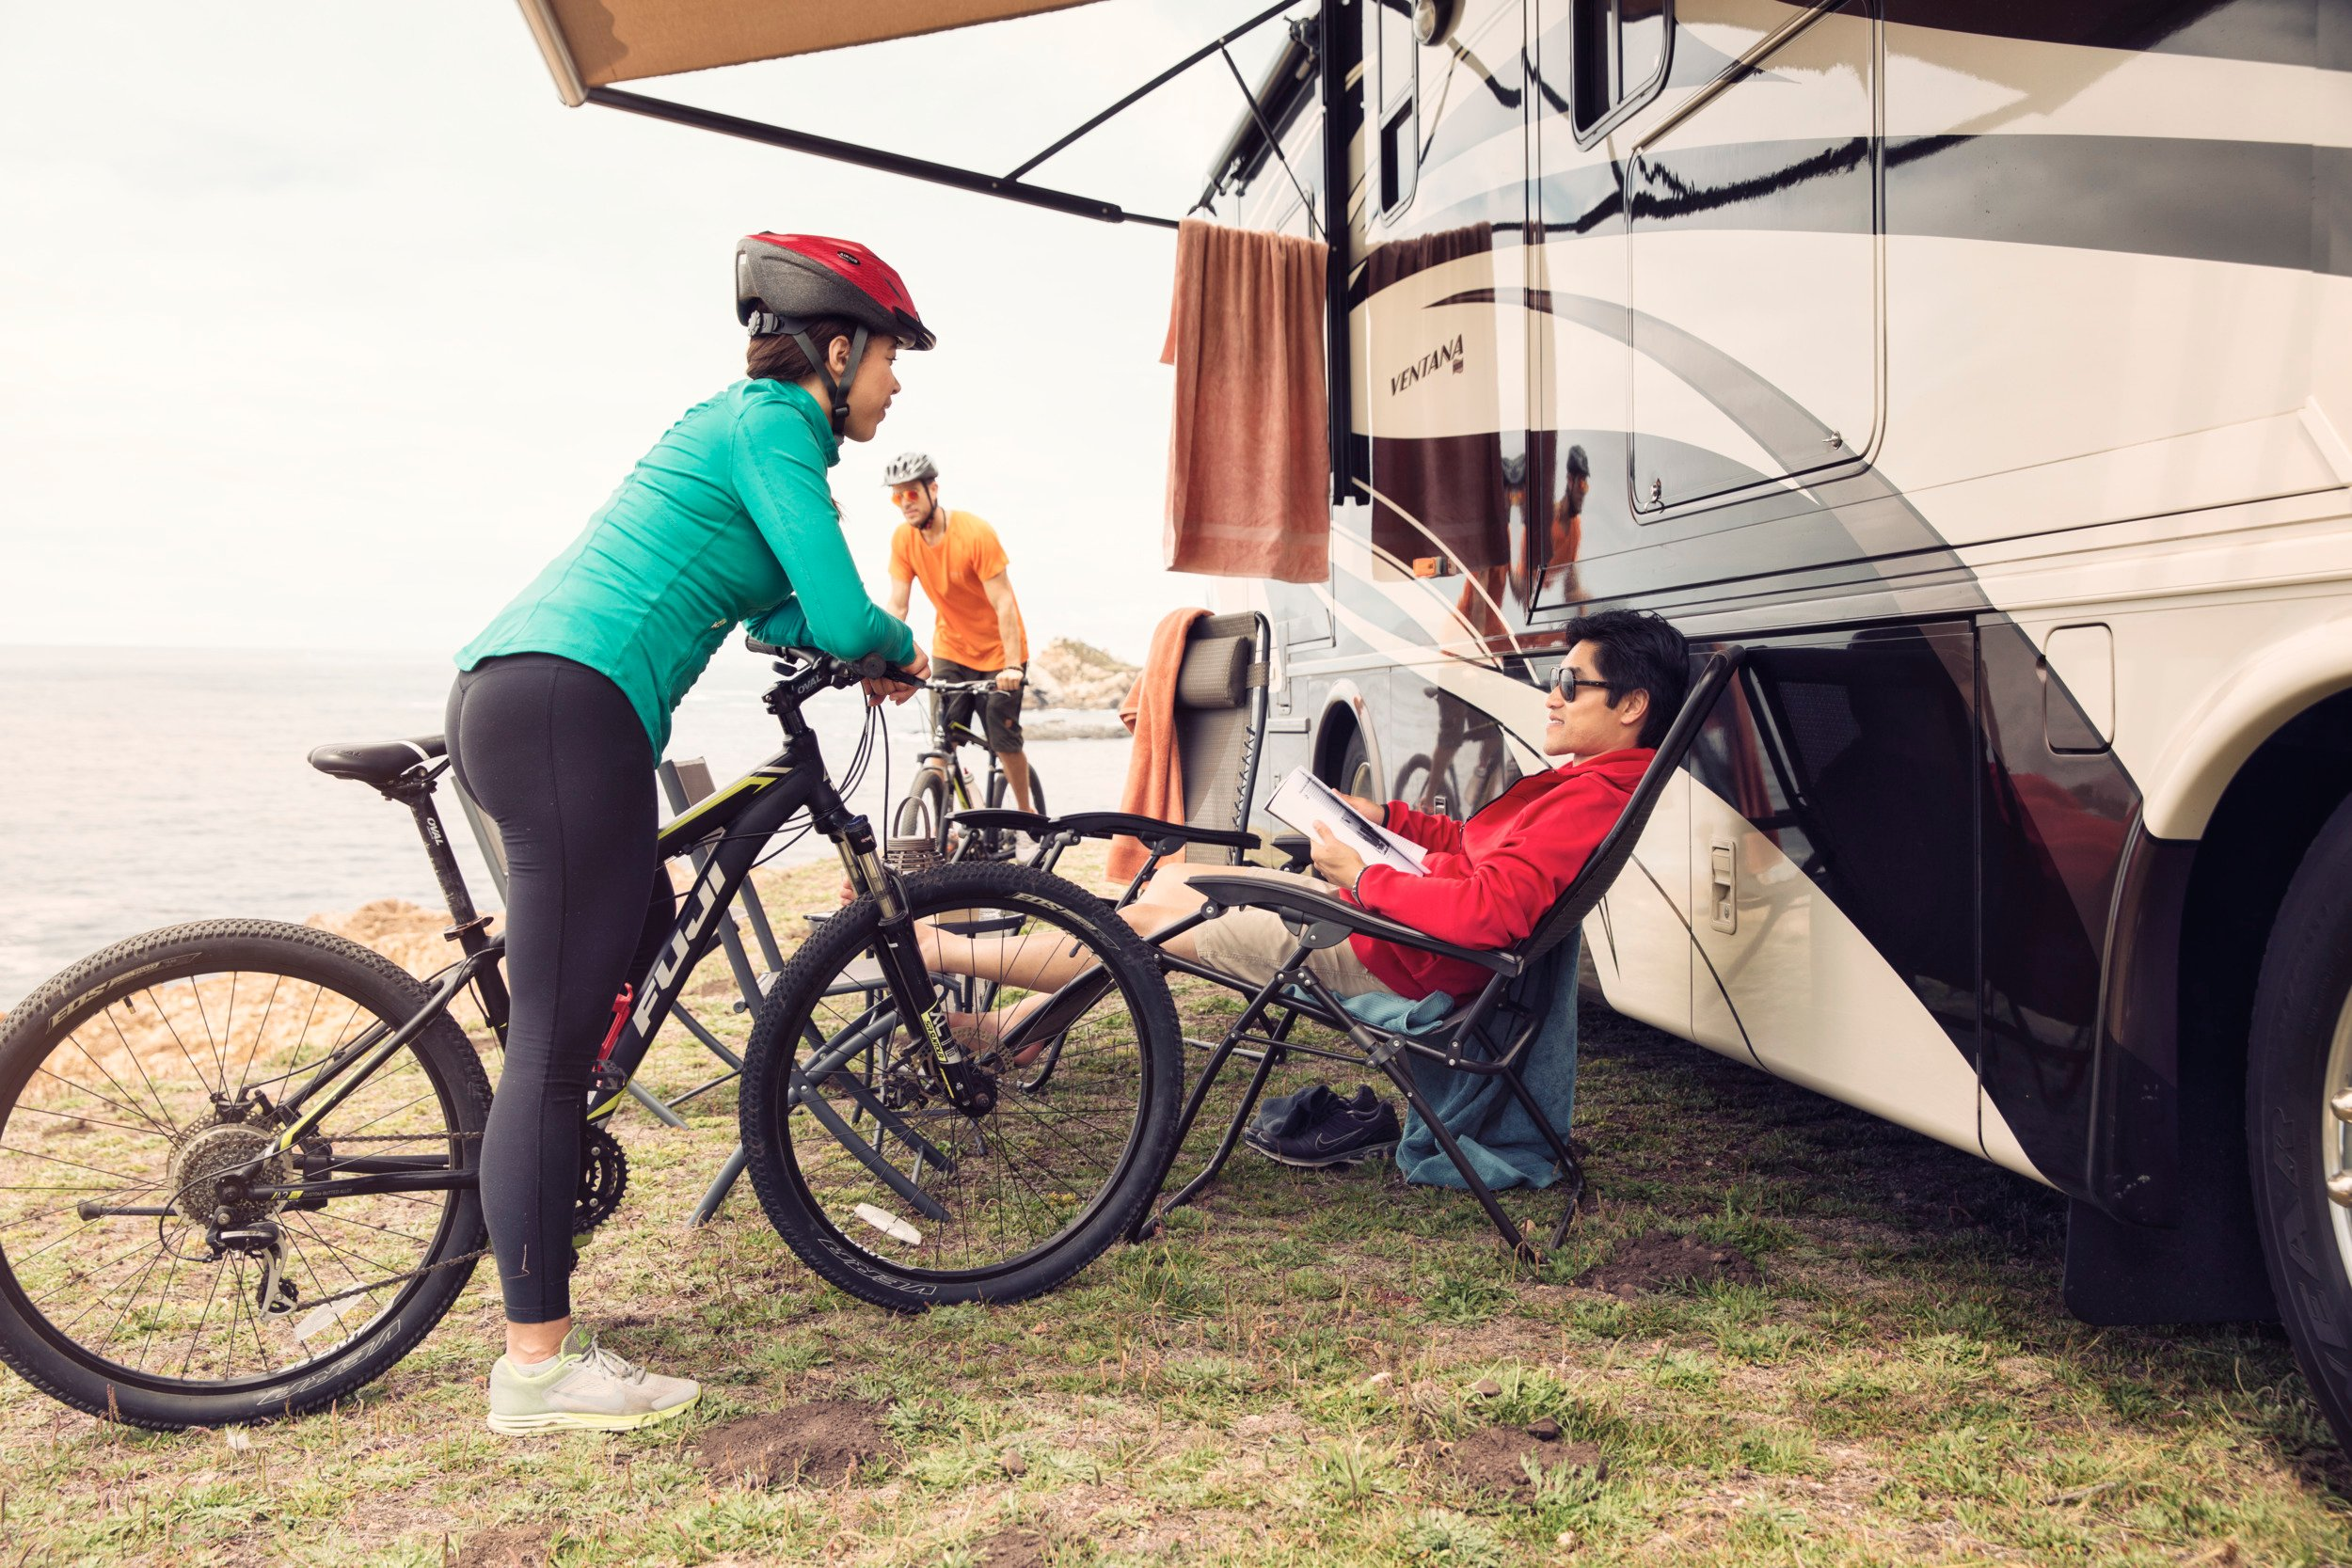 Dometic rv motorhome biking awning Day6 0073, mtb, mountain, bike ,mountainbike, chair, awning, motorhome, rv, seaside, sea, water, lake, lakeside, free, ative, athletic, sporty